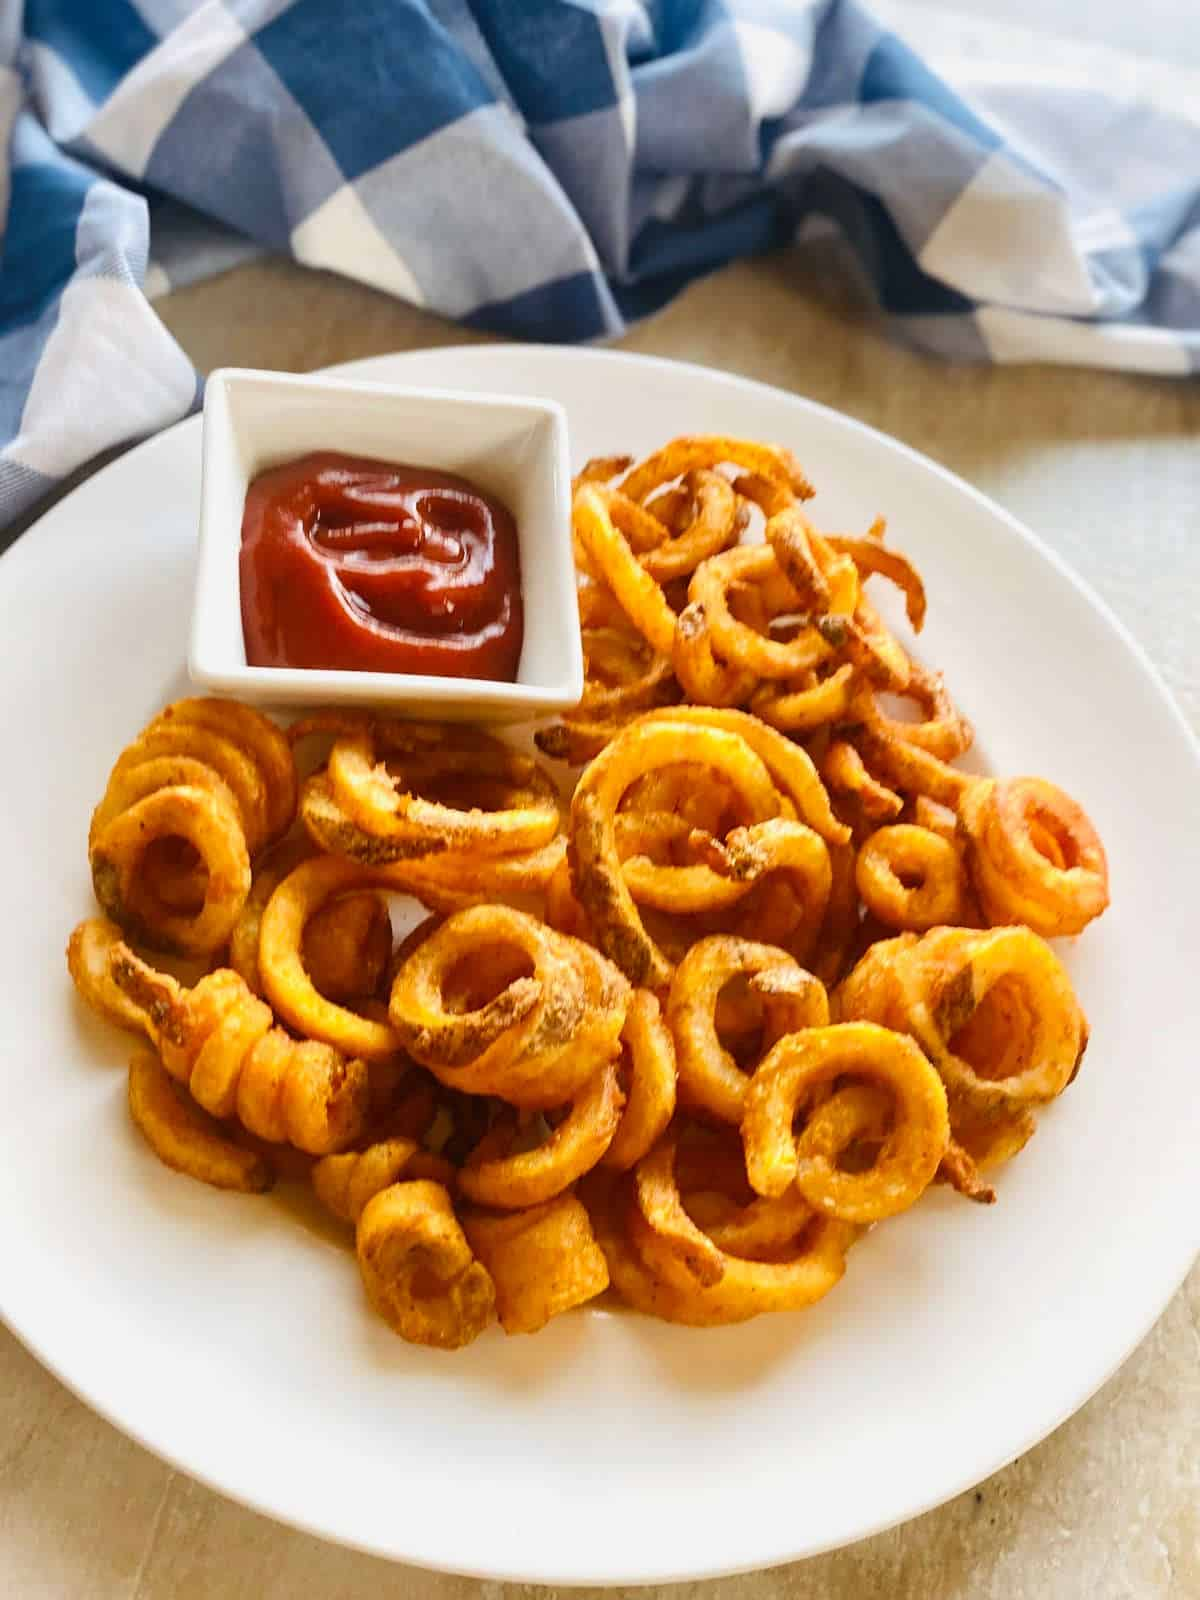 arby's air fryer curly fries on a plate next to ketchup